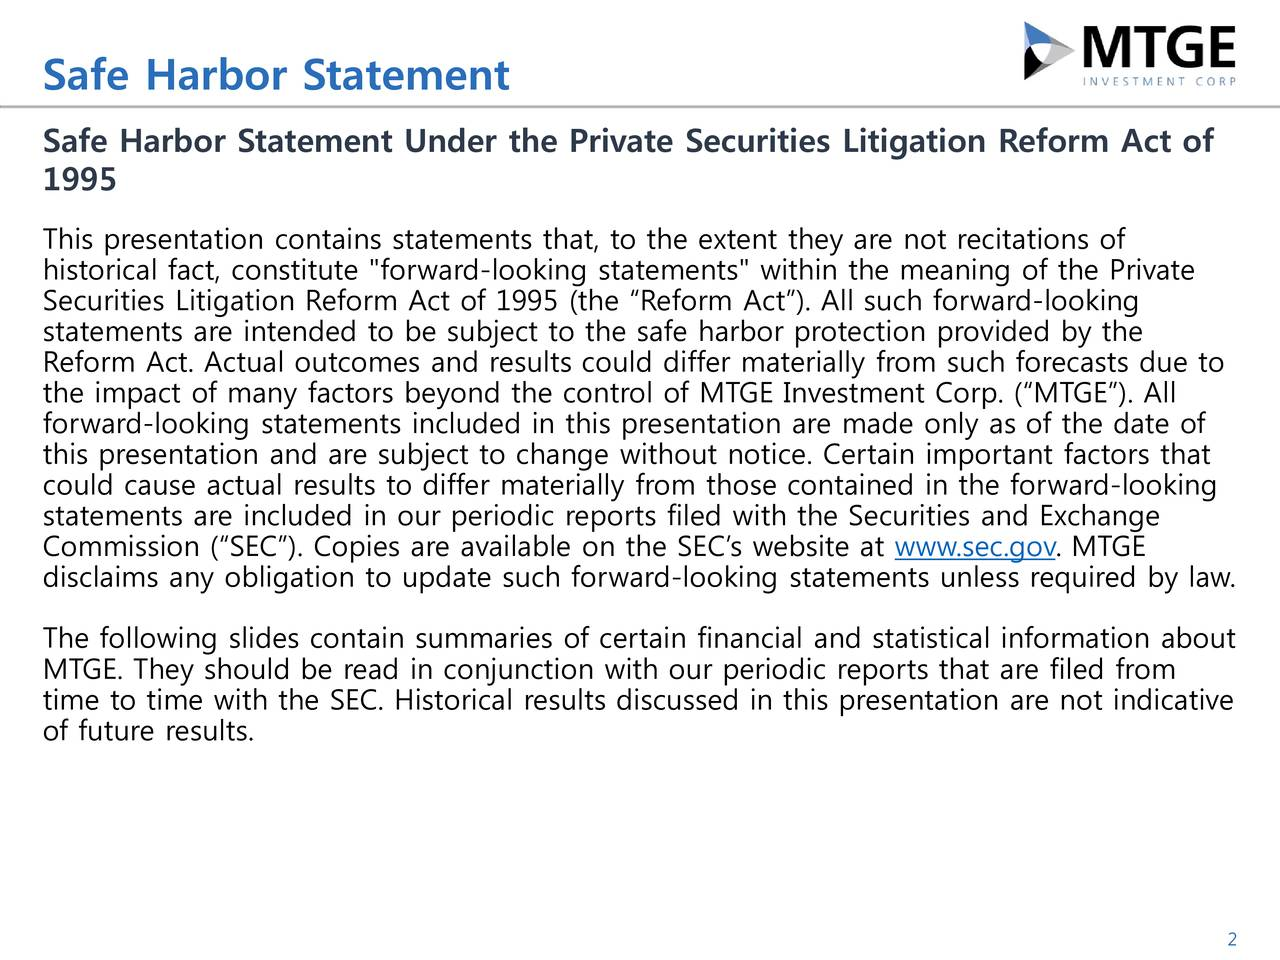 "Under the Private Securities Litigation Reform Act of 1995 This presentation contains statements that, to the extent they are not recitations of historical fact, constitute ""forward-looking statements"" within the meaning of the Private Securities Litigation Reform Act of 1995 (the Reform Act). All such forward-looking statements are intended to be subject to the safe harbor protection provided by the Reform Act. Actual outcomes and results could differ materially from such forecasts due to the impact of many factors beyond the control of MTGE Investment Corp. (MTGE). All forward-looking statements included in this presentation are made only as of the date of this presentation and are subject to change without notice. Certain important factors that could cause actual results to differ materially from those contained in the forward-looking statements are included in our periodic reports filed with the Securities and Exchange Commission (SEC). Copies are available on the SECs website at www.sec.gov. MTGE disclaims any obligation to update such forward-looking statements unless required by law. The following slides contain summaries of certain financial and statistical information about MTGE. They should be read in conjunction with our periodic reports that are filed from time to time with the SEC. Historical results discussed in this presentation are not indicative of future results. 2"